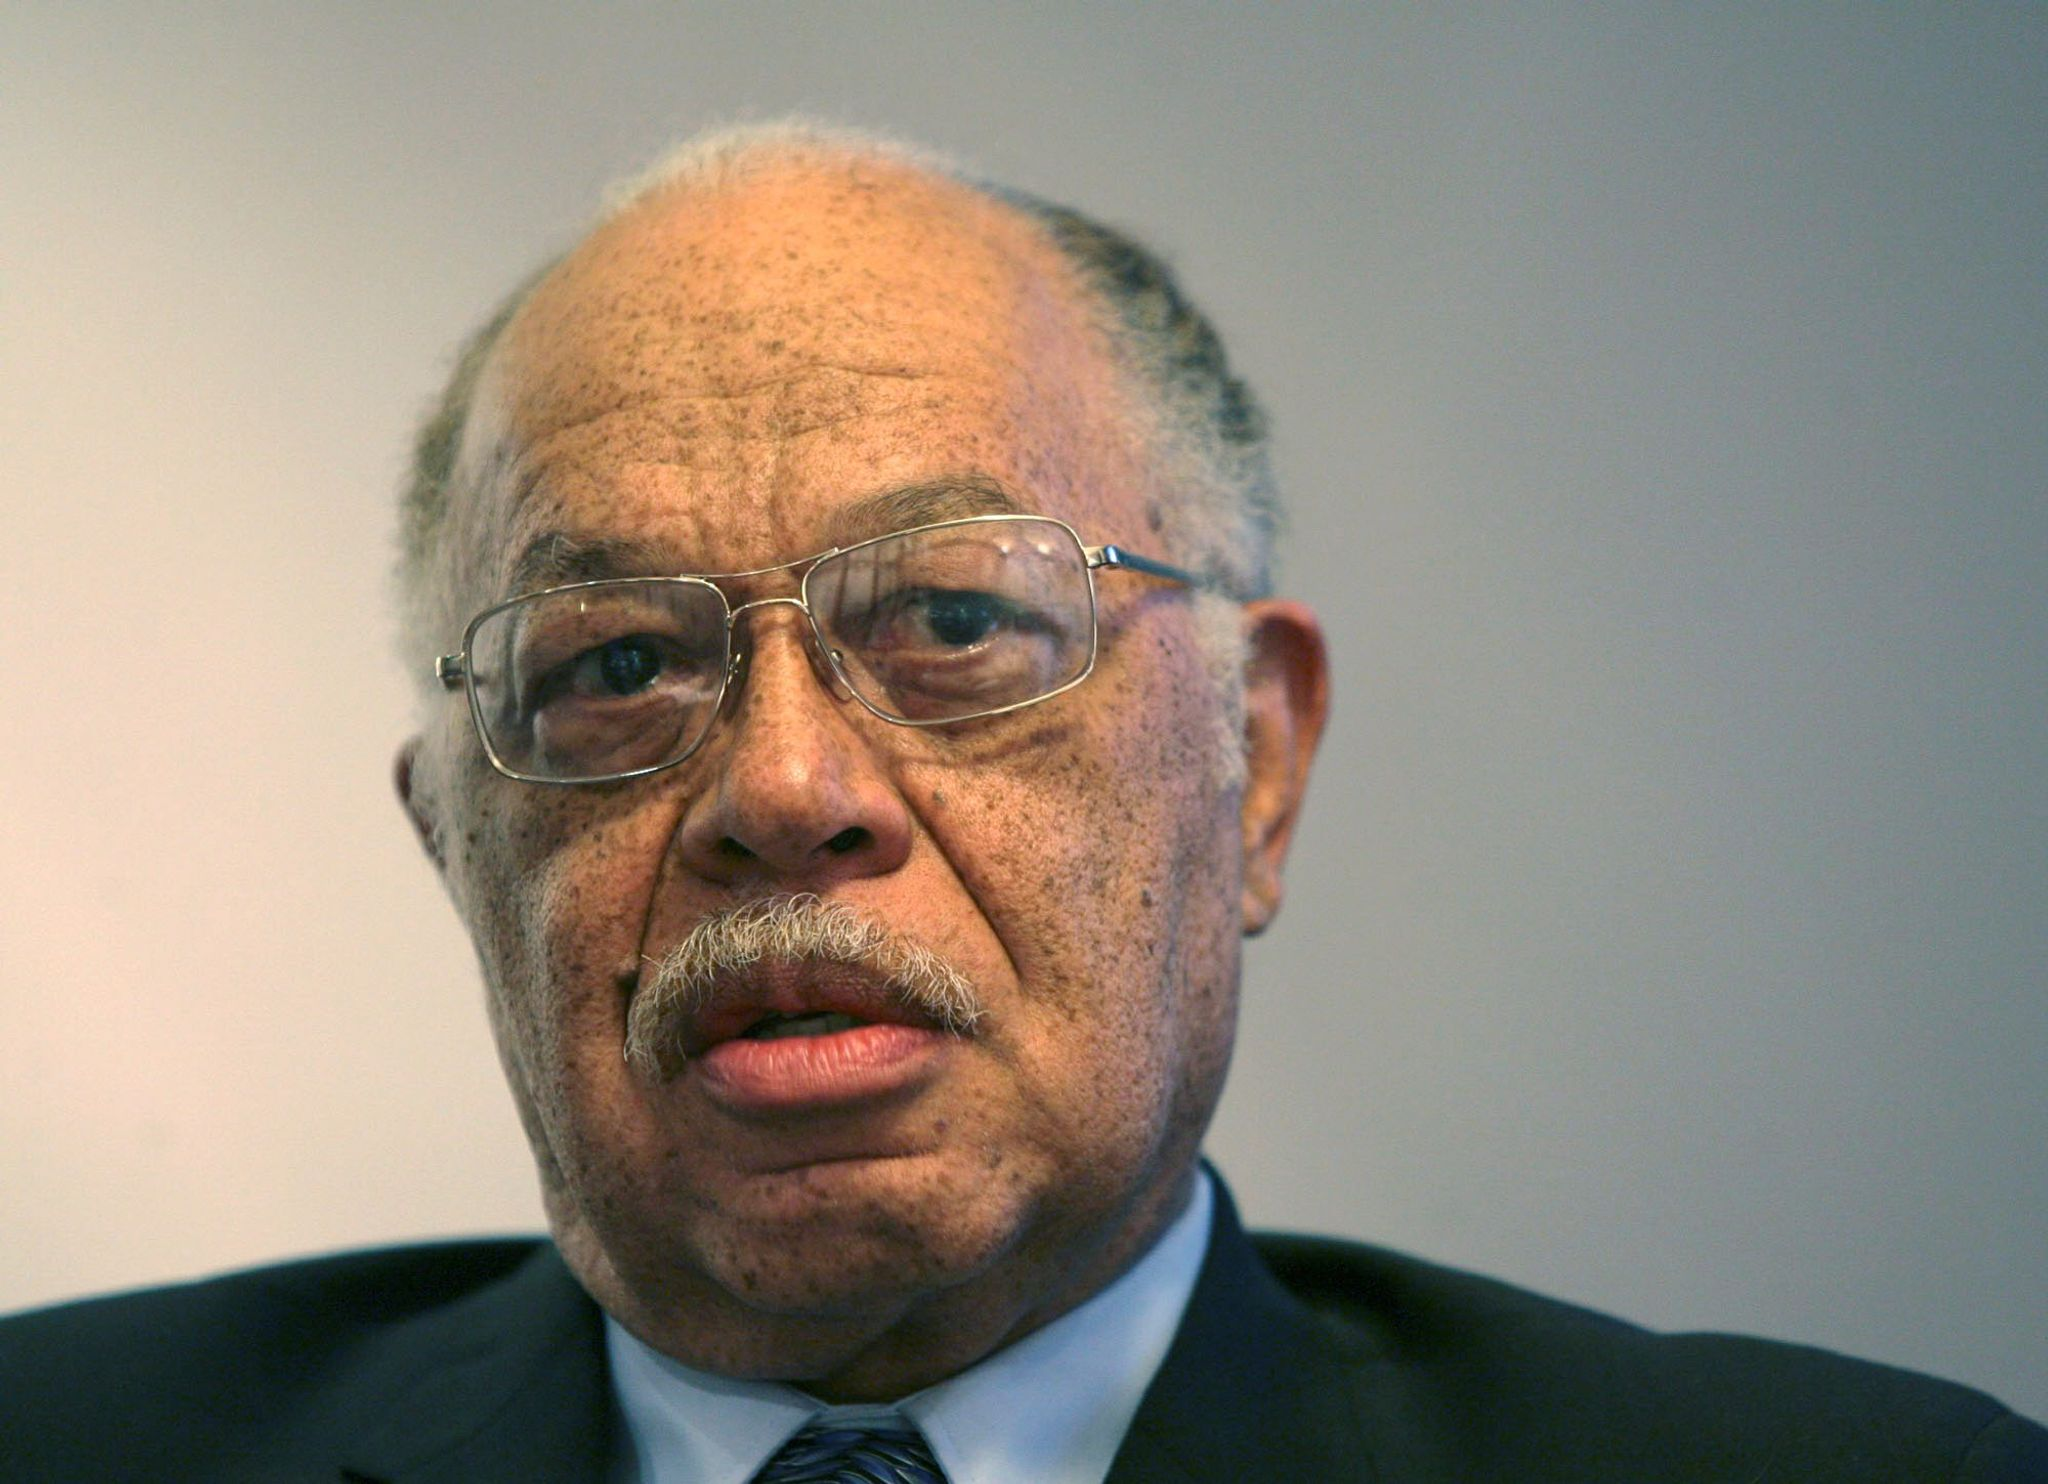 Kermit Gosnell film shines light on darkness and evil of abortion - Washington T...